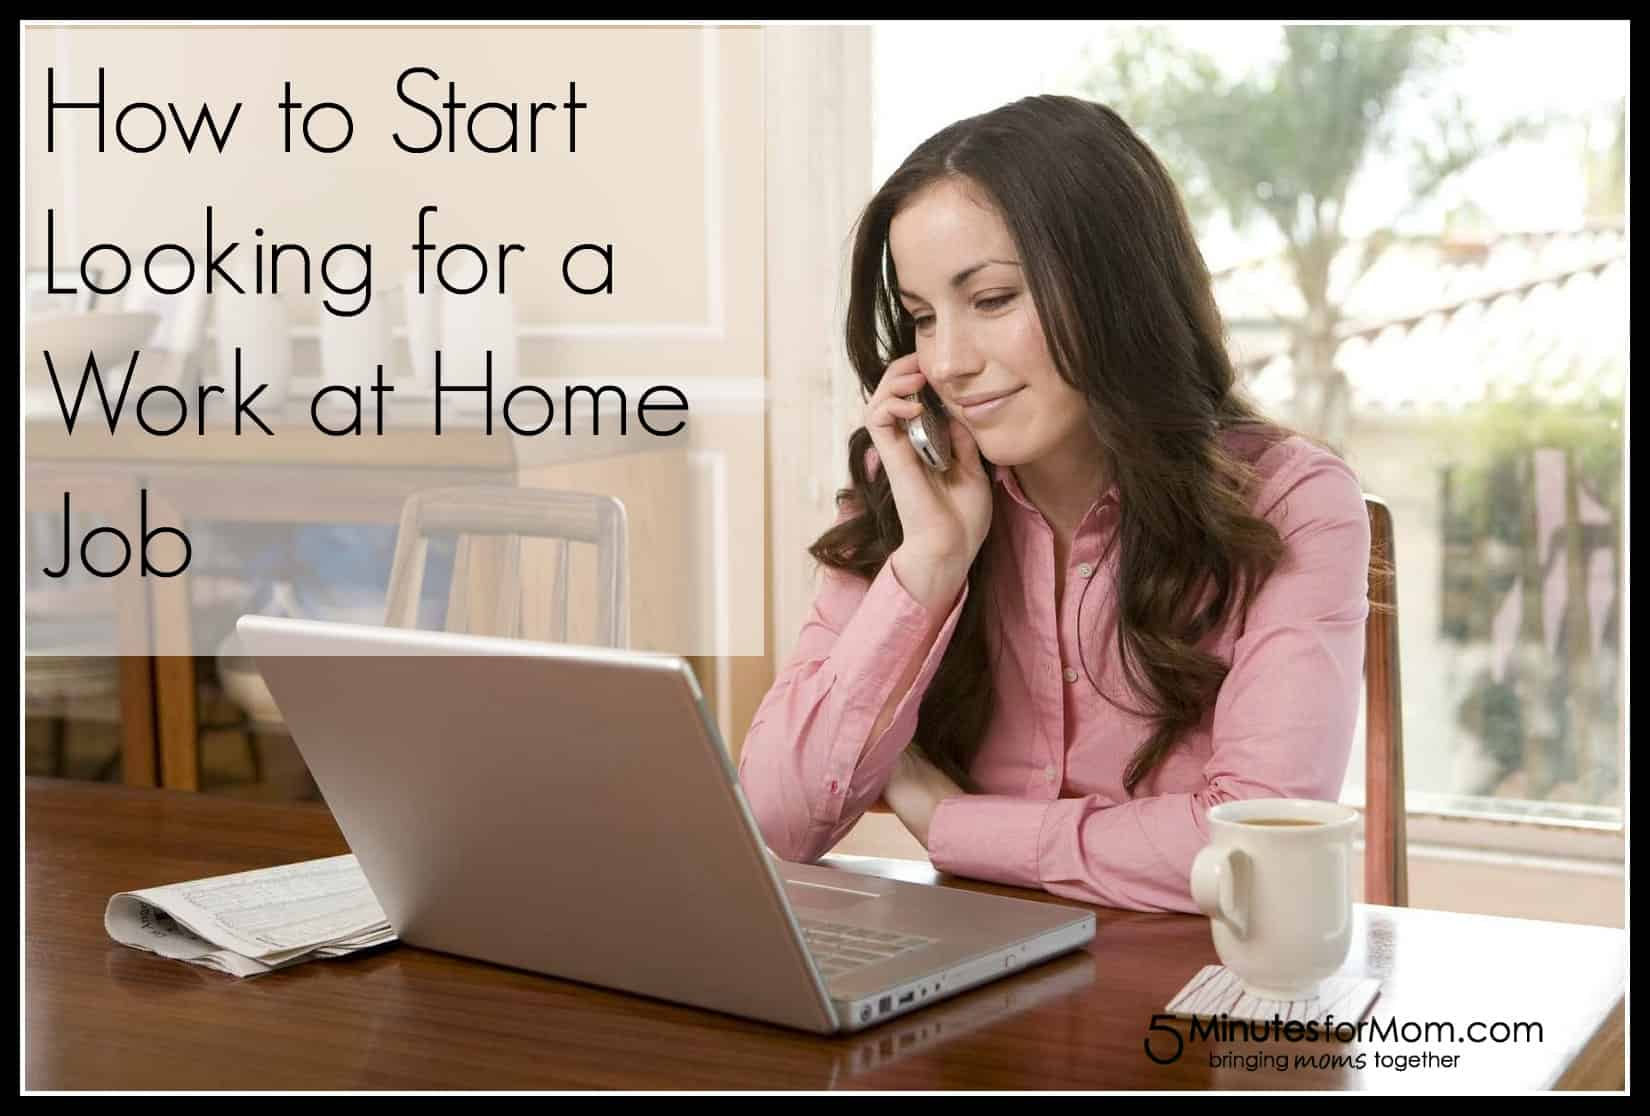 jet2 work from home jobs